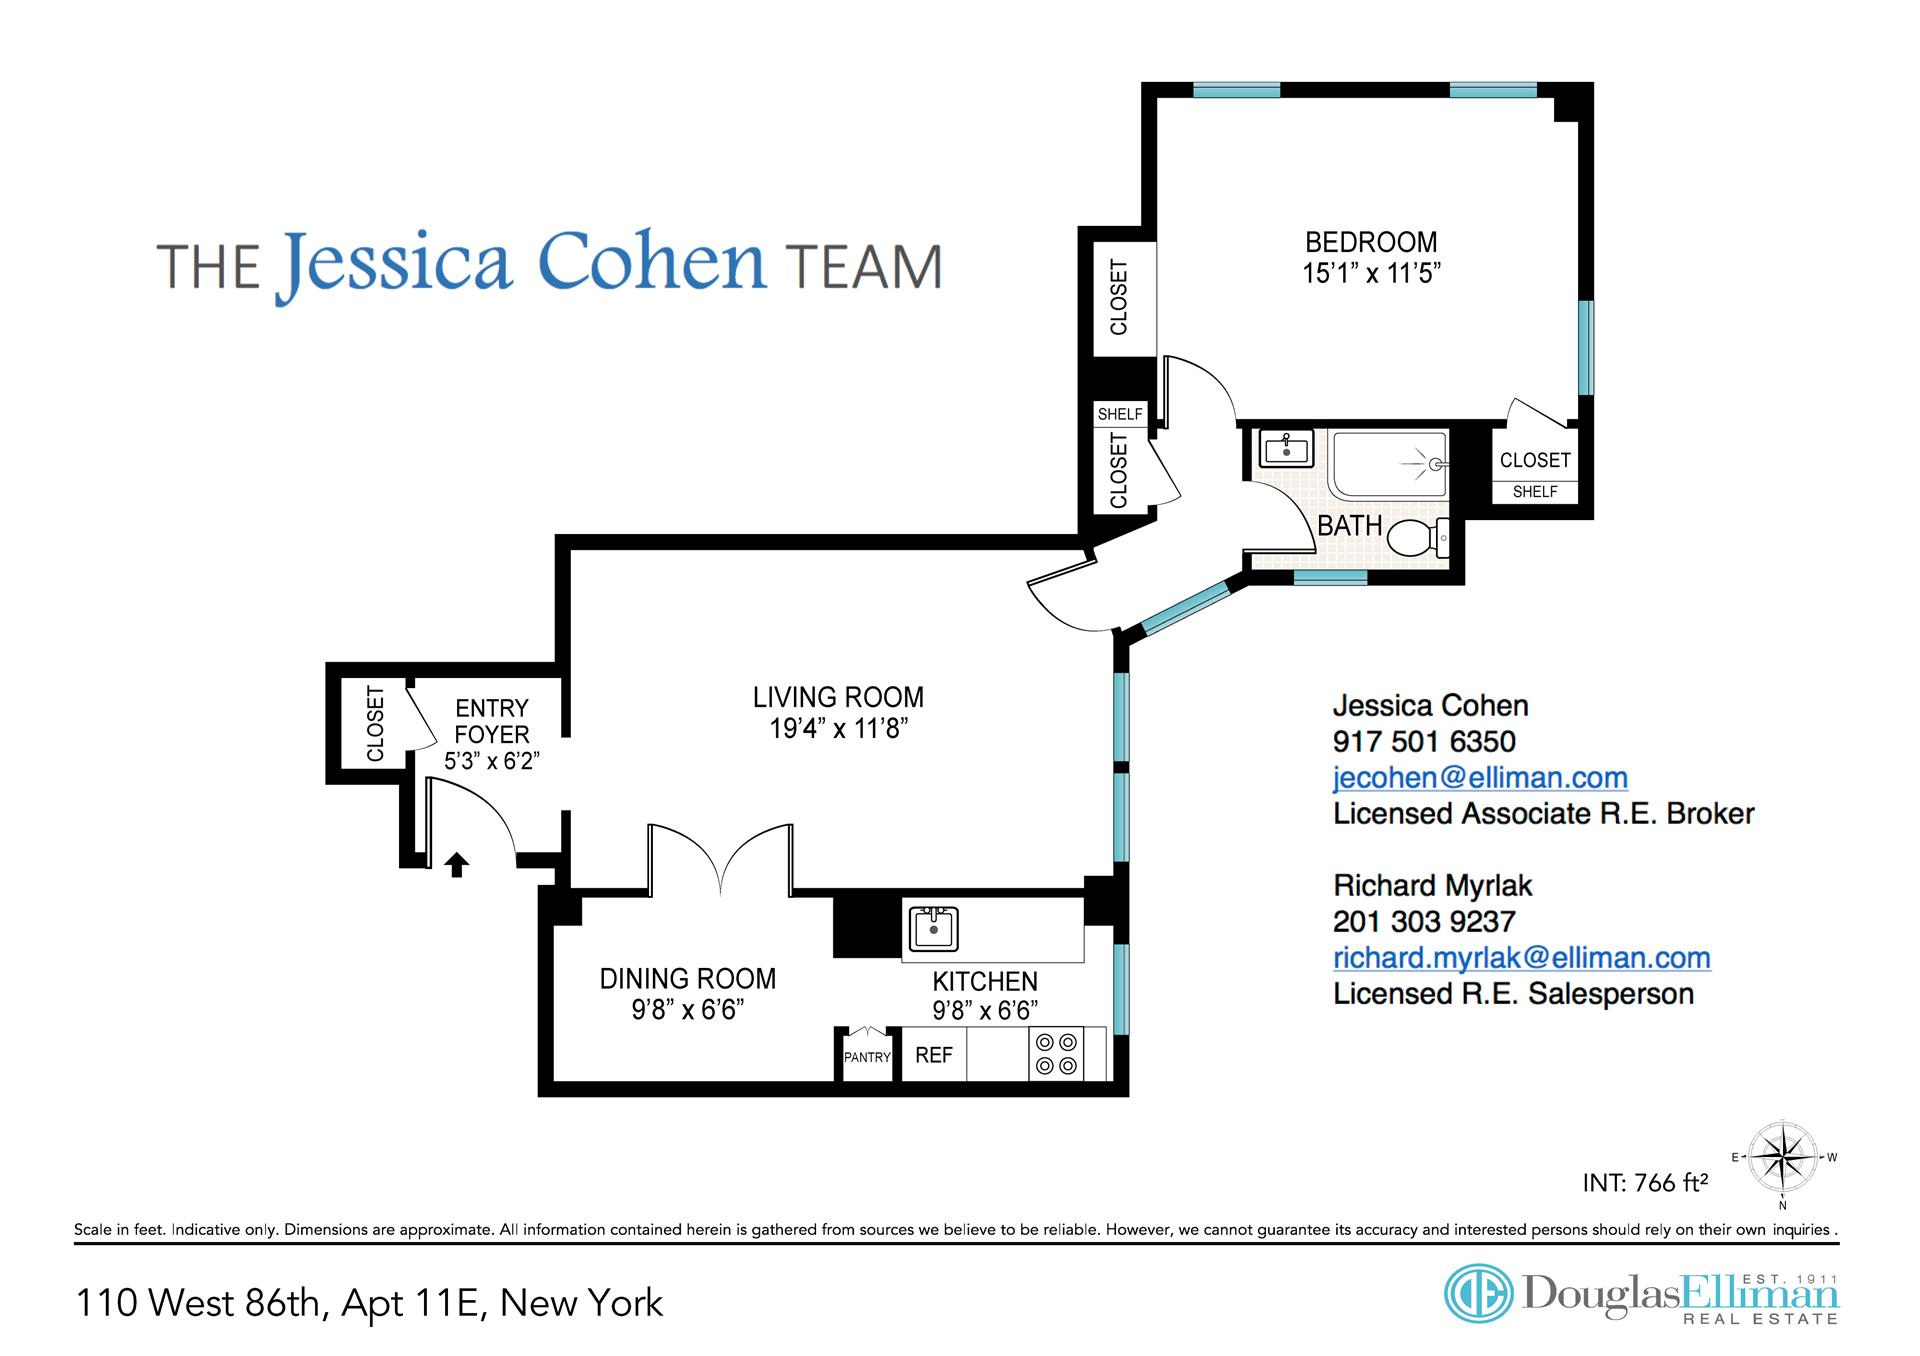 Floor plan of 110 West 86th St, 11E - Upper West Side, New York